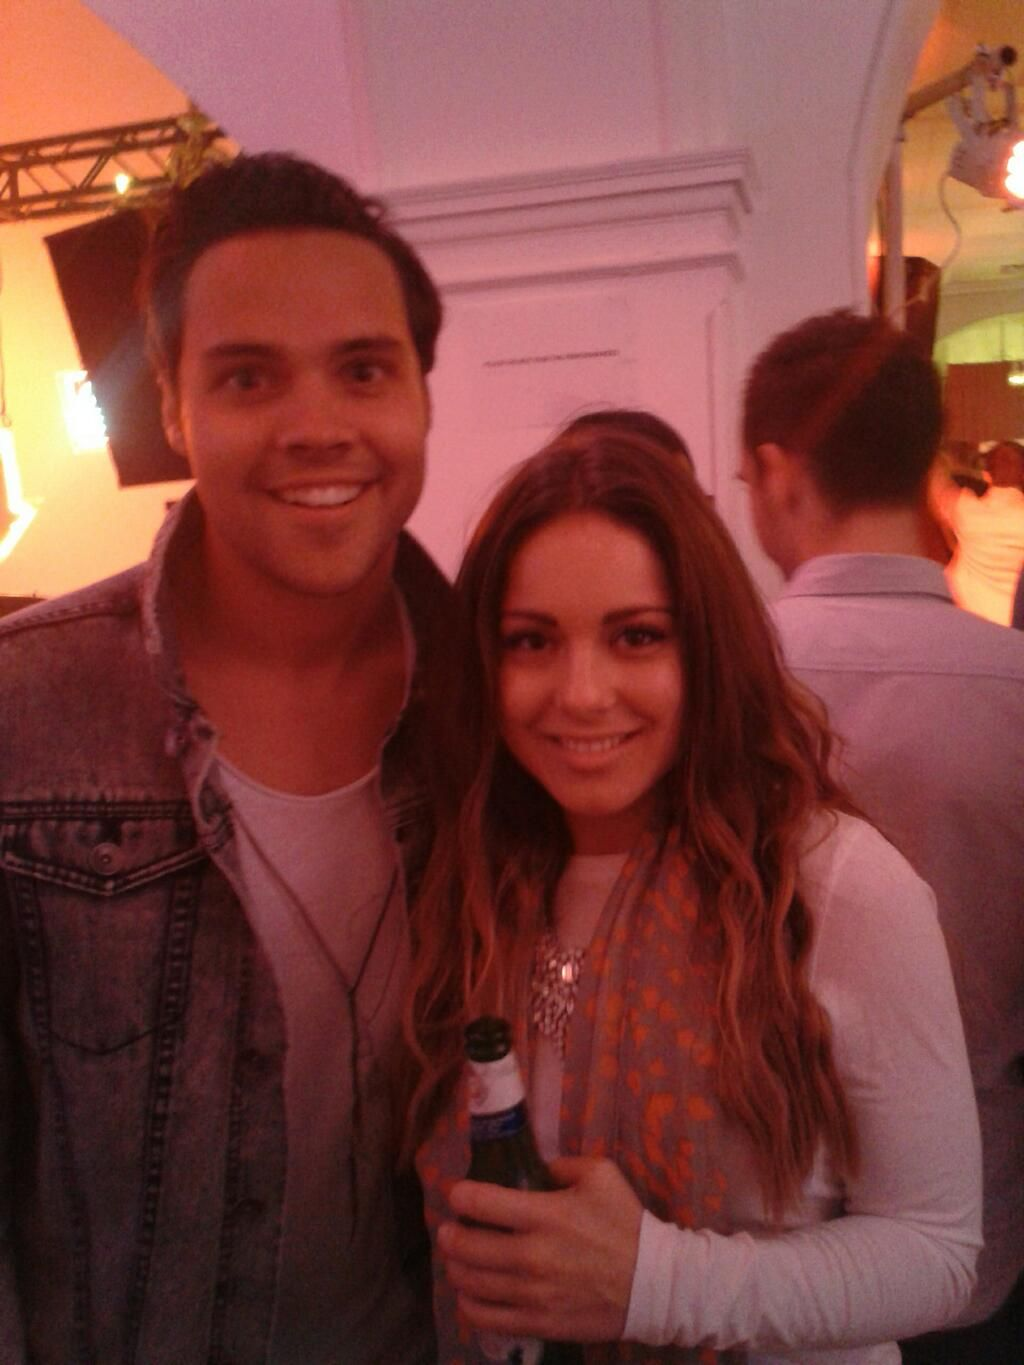 Je spencer dating louise